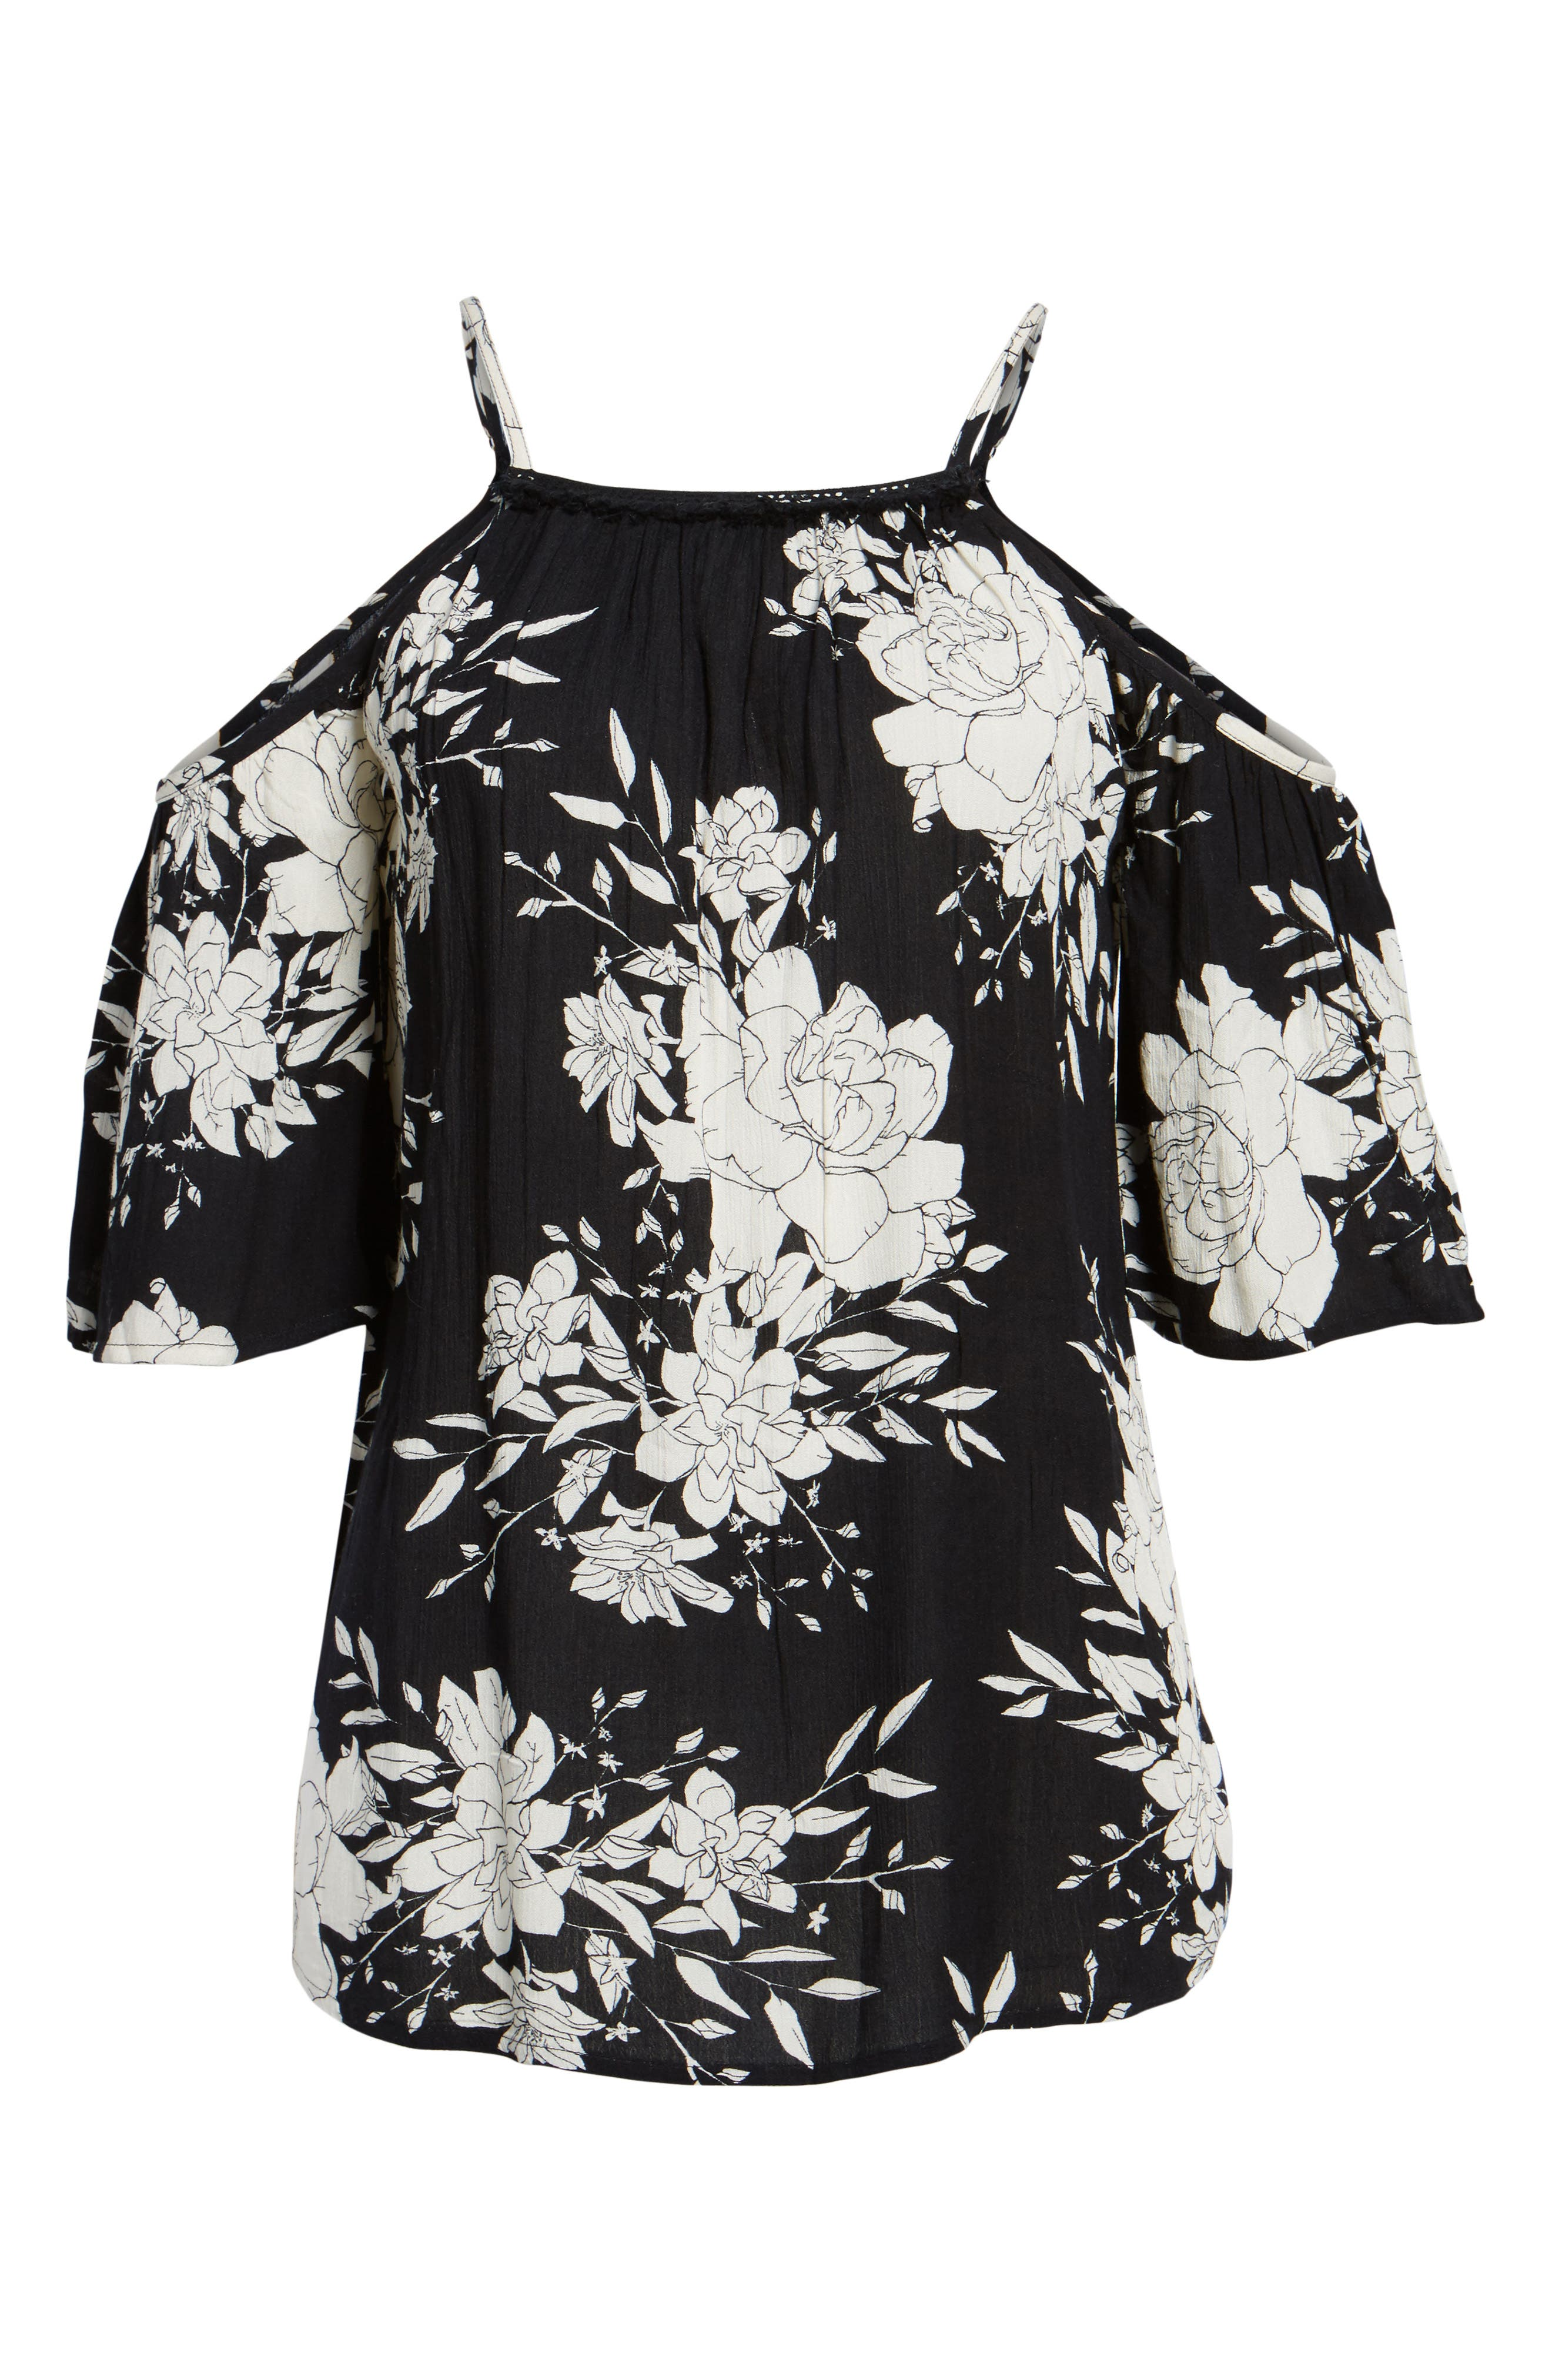 Nor-Summer Storm Off the Shoulder Cover-Up,                         Main,                         color, Black/ White